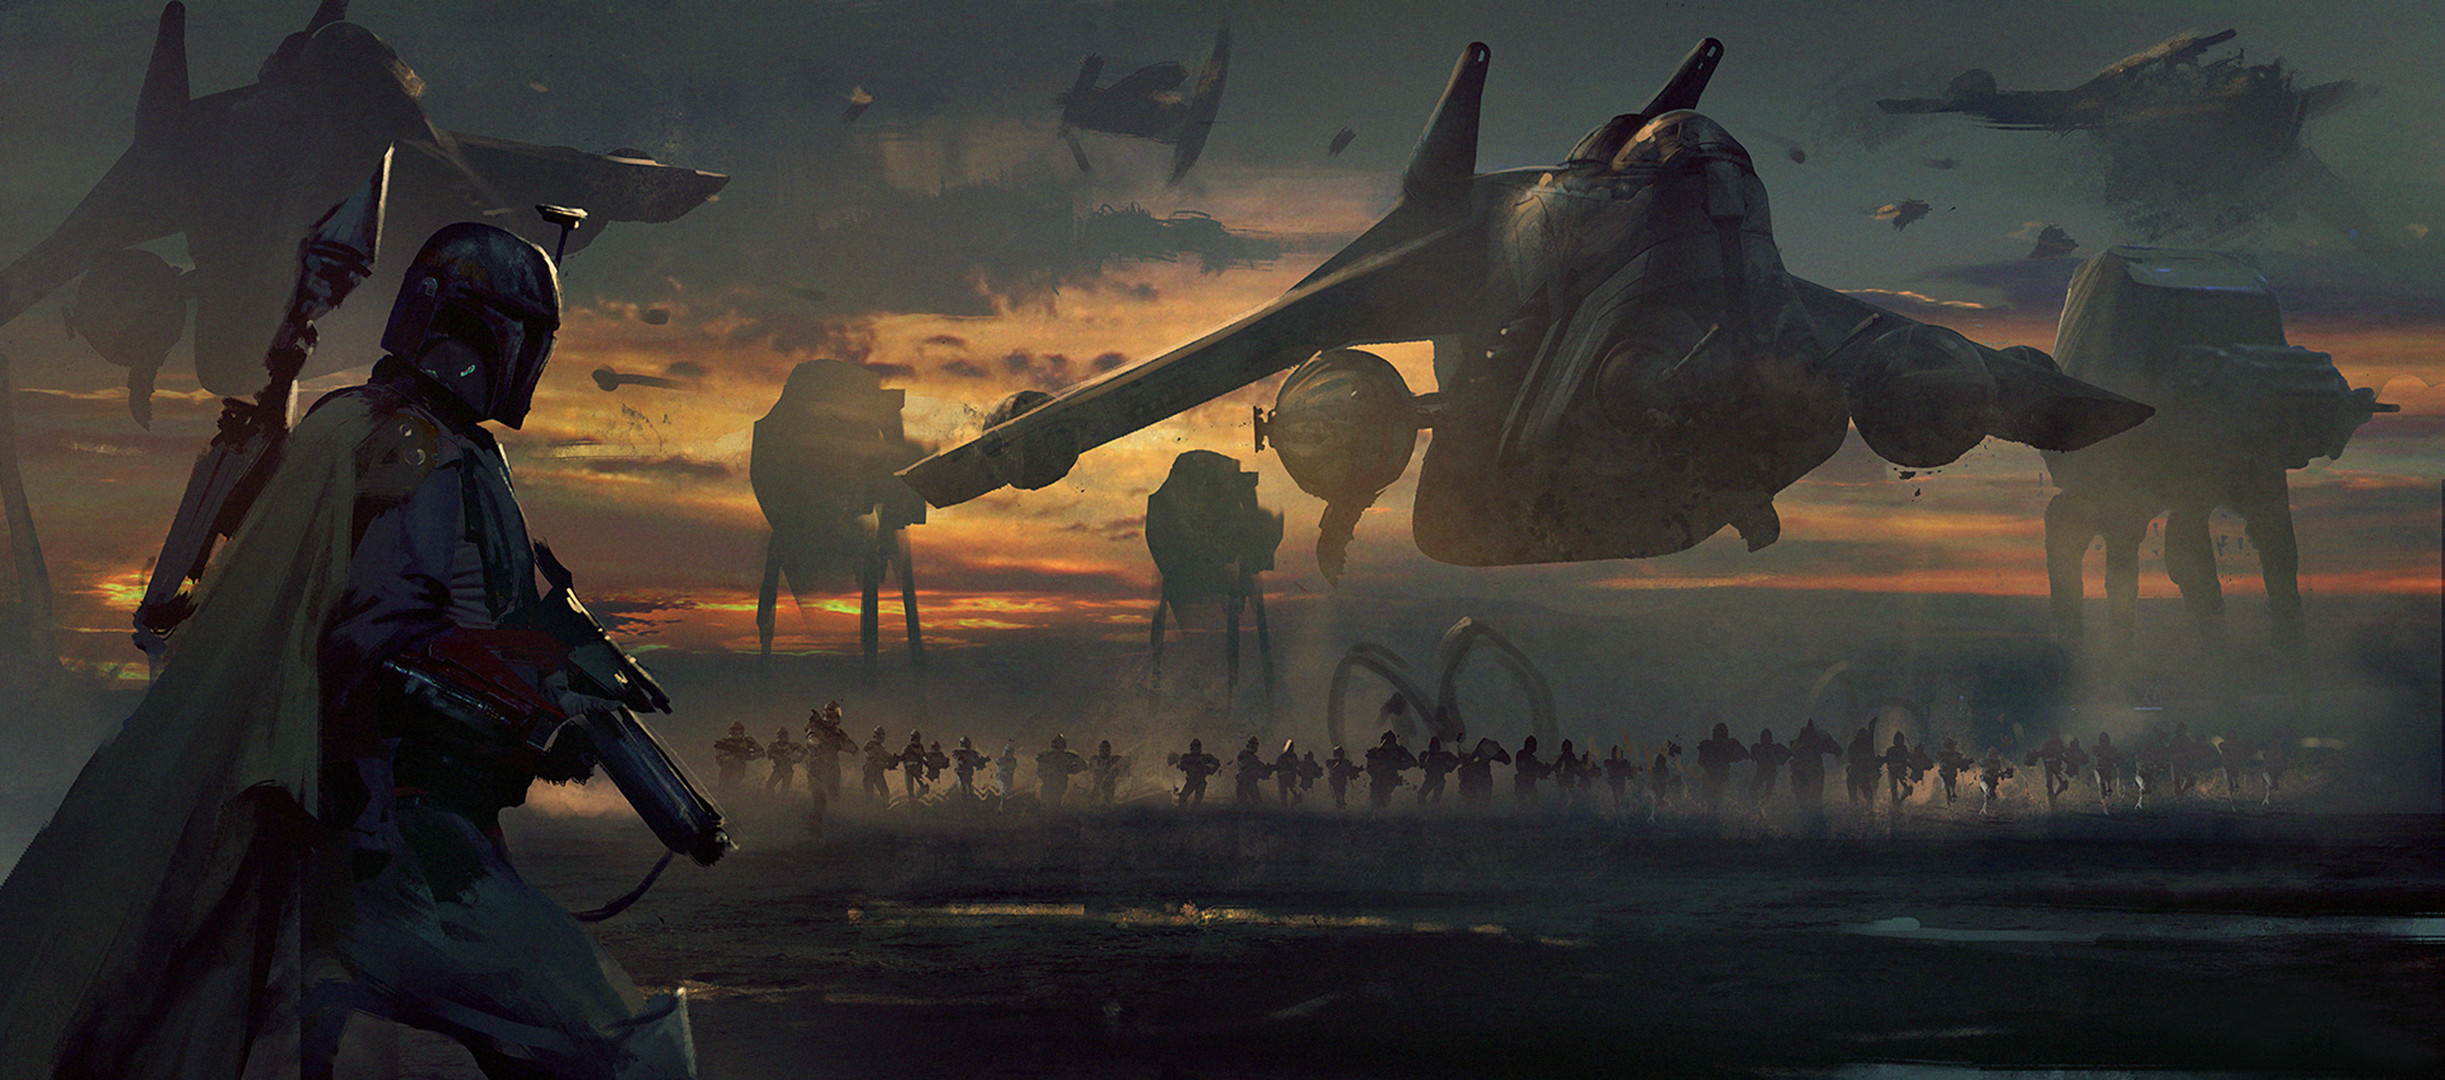 146 Star Wars Art